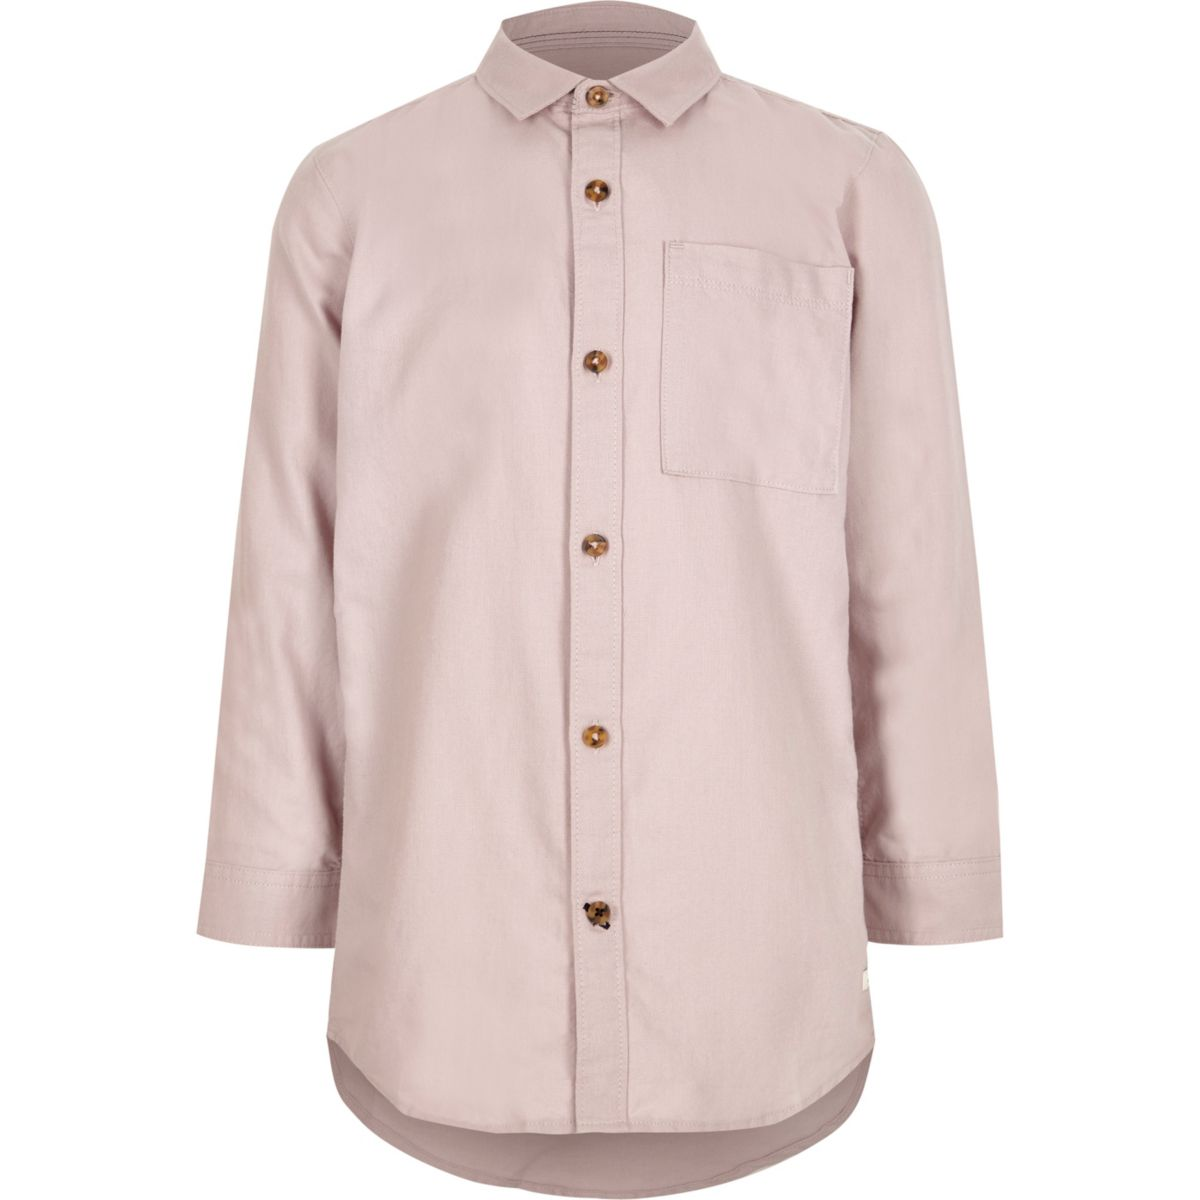 Boys pink long sleeve Oxford shirt